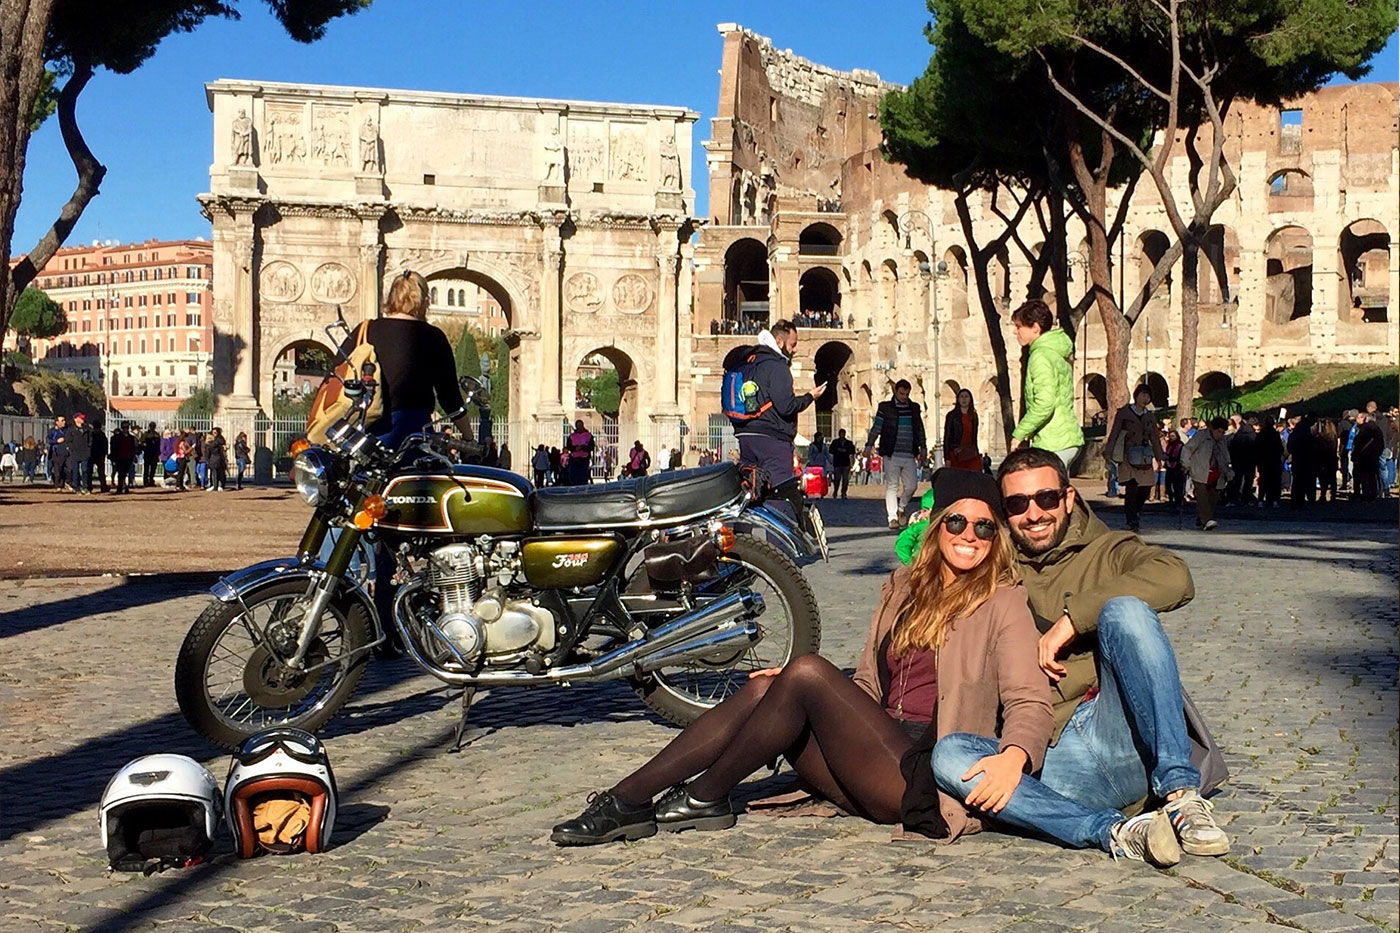 Roberto Agostini The Bikerchefproject viaggiare e cucinare